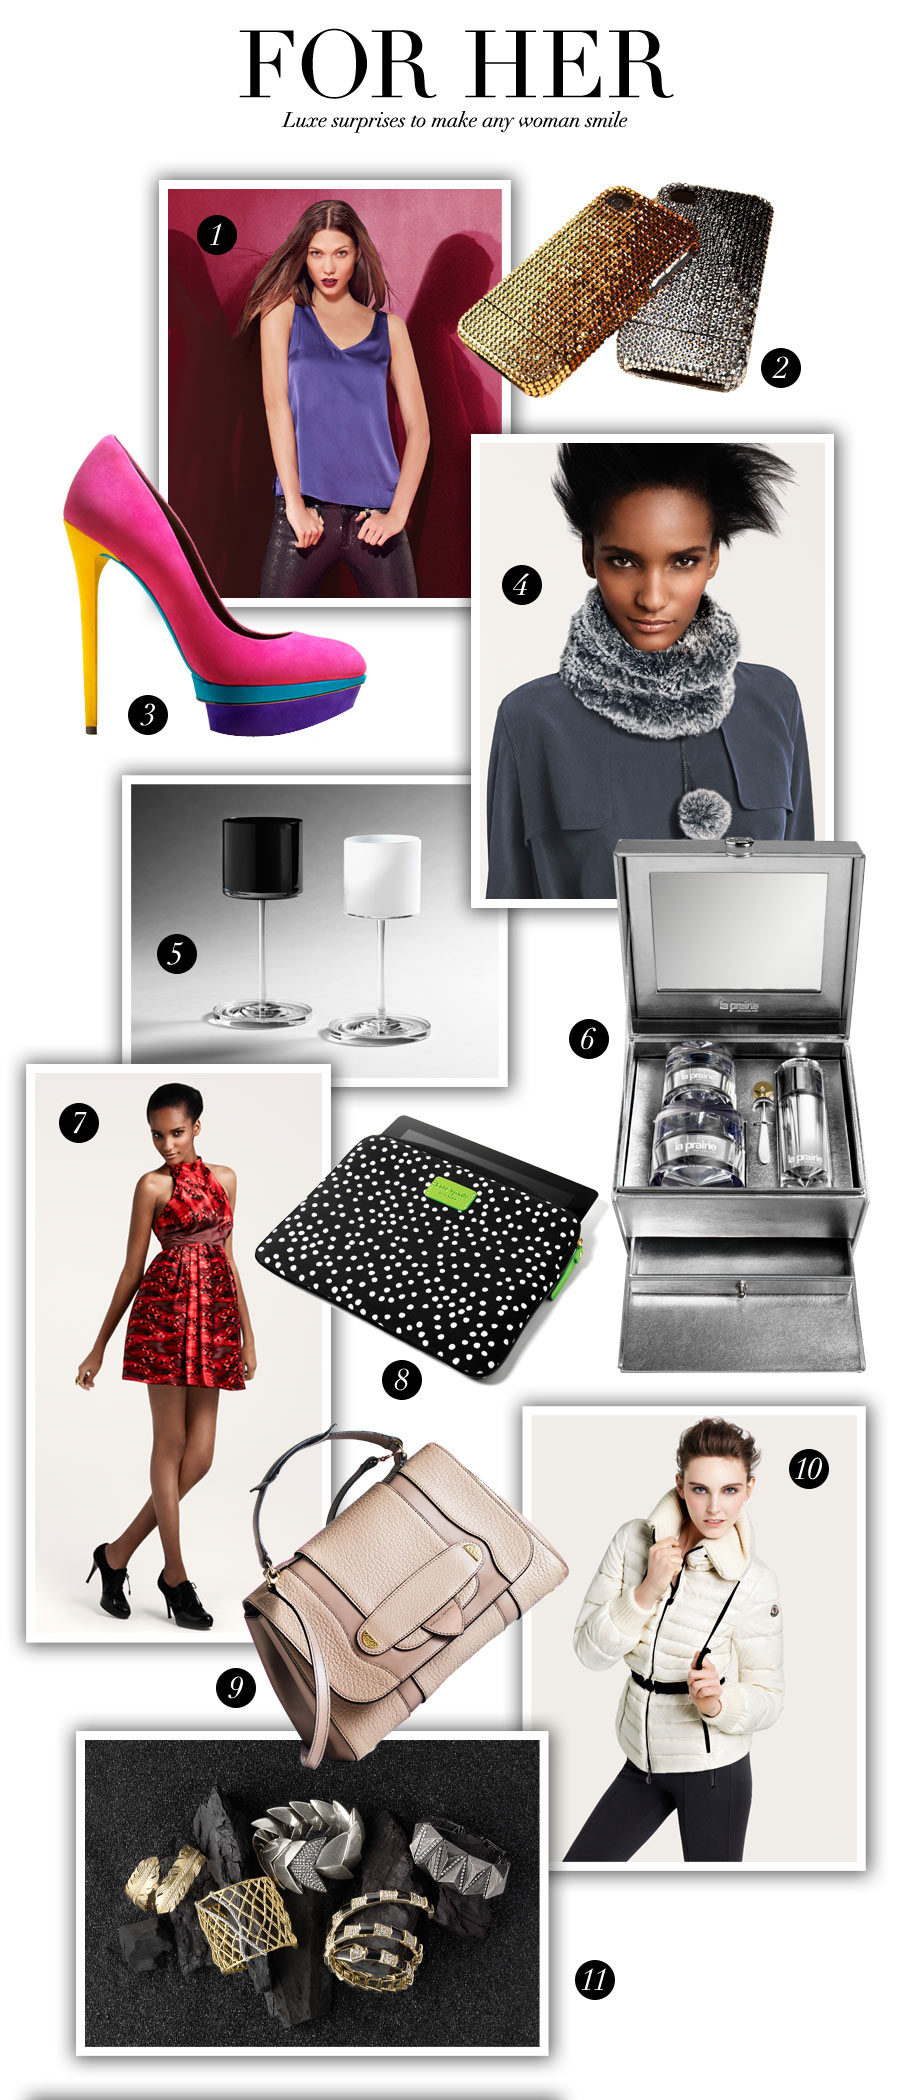 Holiday Fashion For Her: Luxe surprises to make any woman smile - Holiday Fashion For Her & Him by Brooke Jaffe, Bloomingdale's